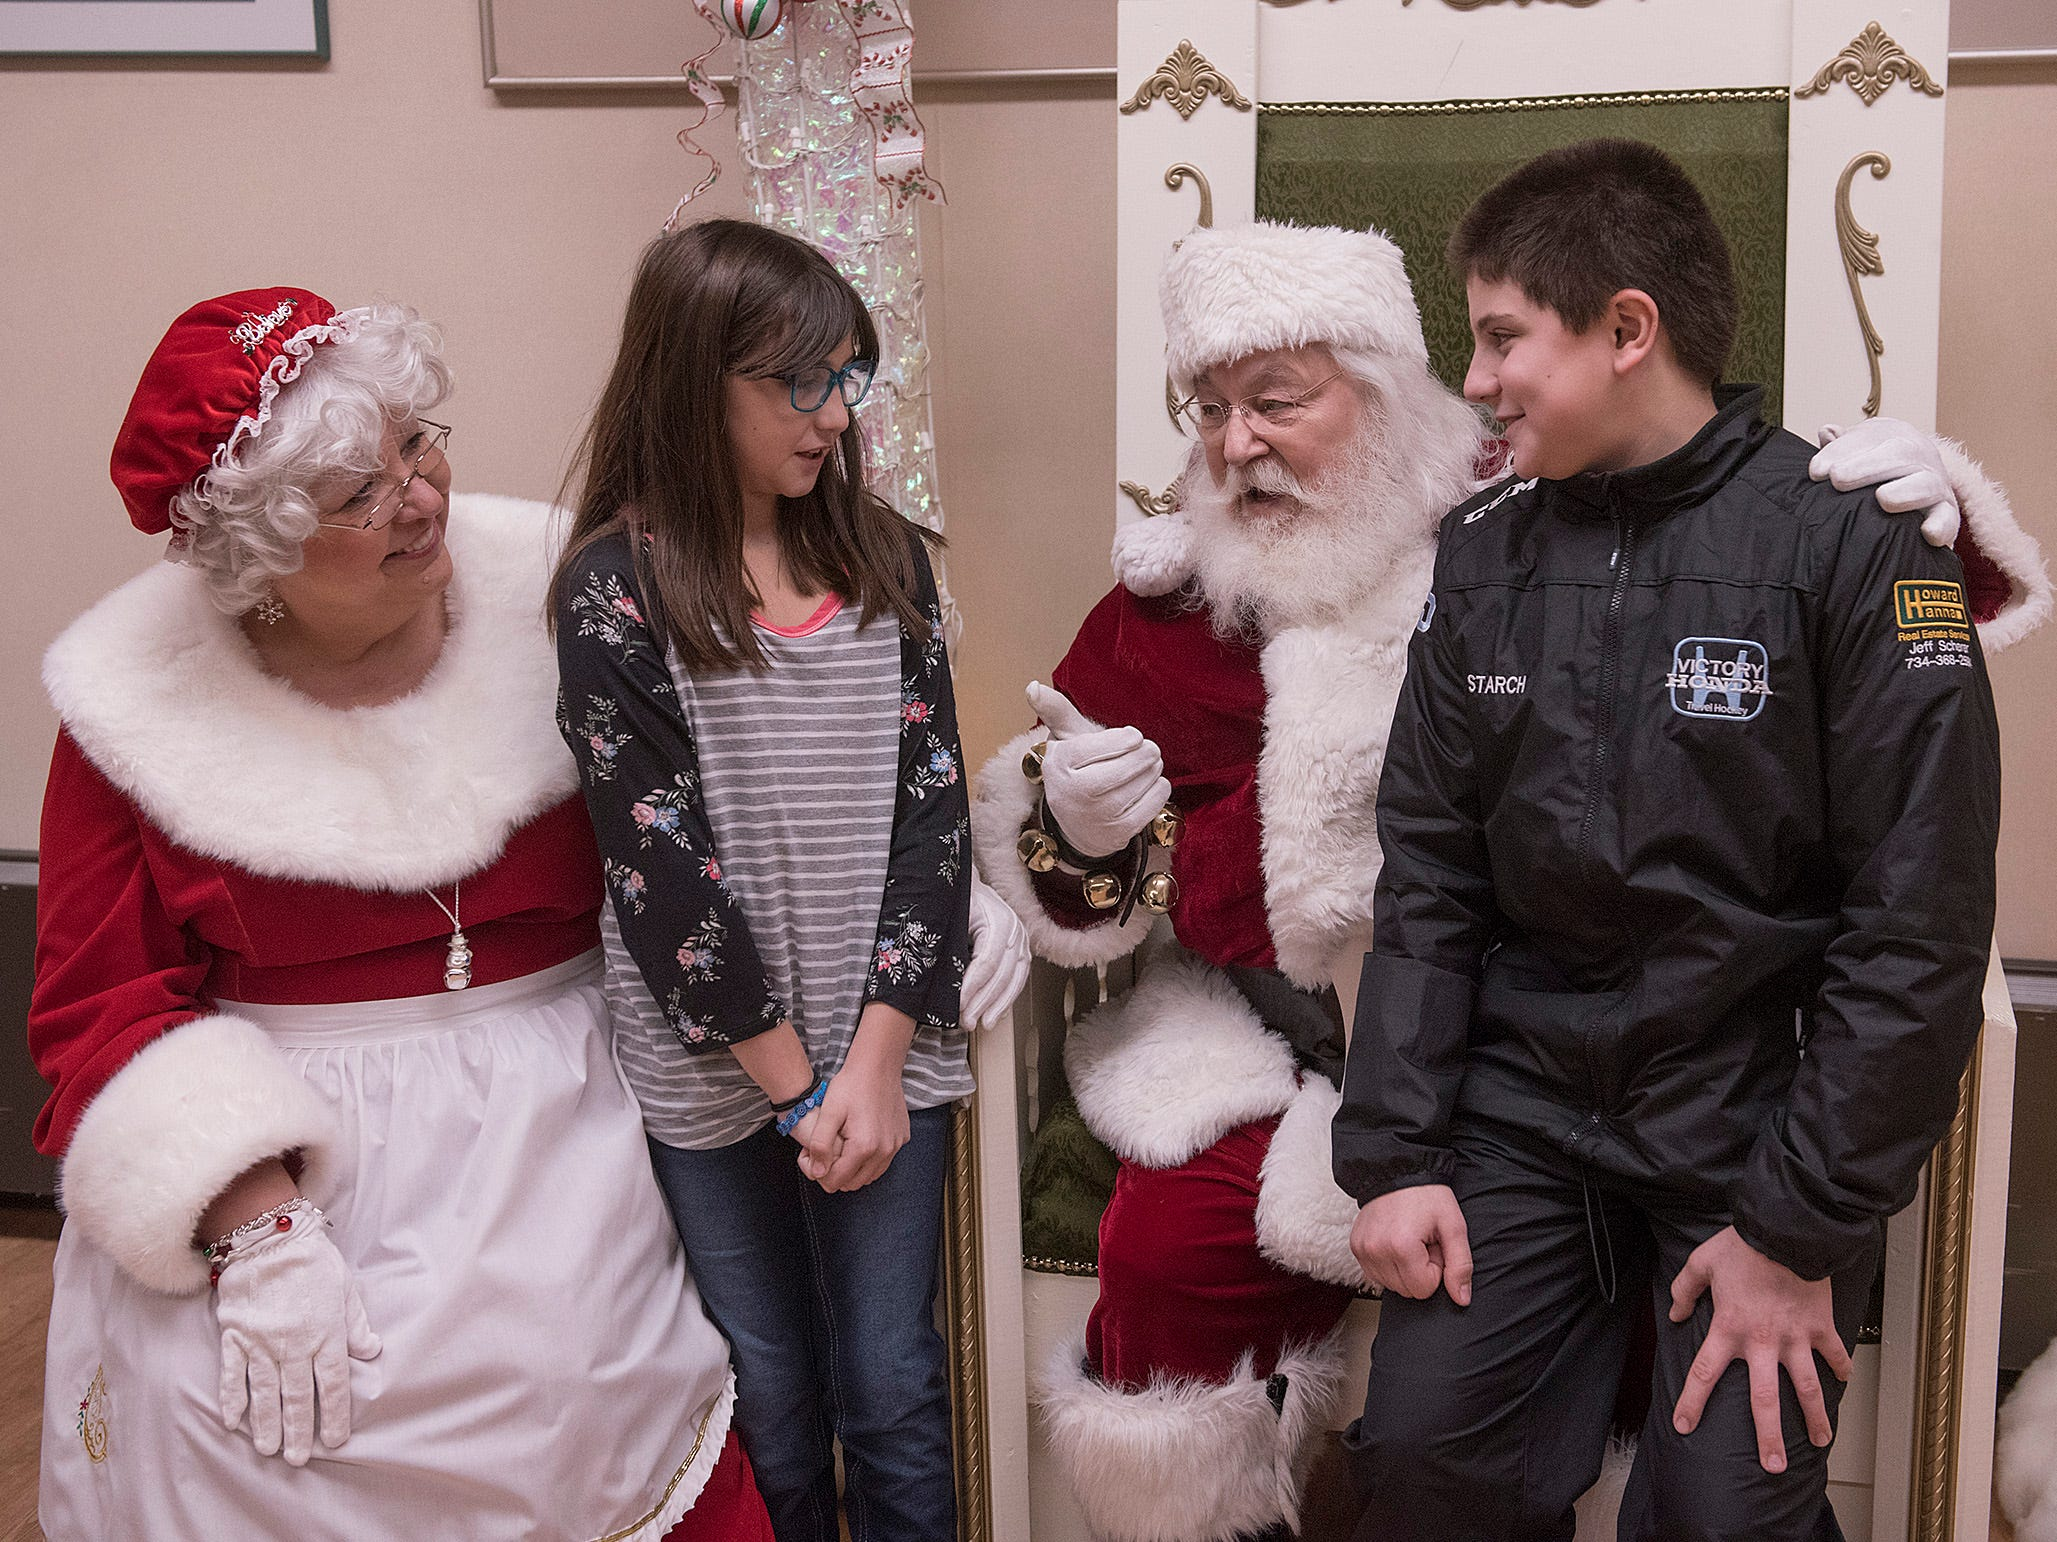 Bethany Starch and brother Sebastian Starch spend a little time with Santa and Mrs. Claus.